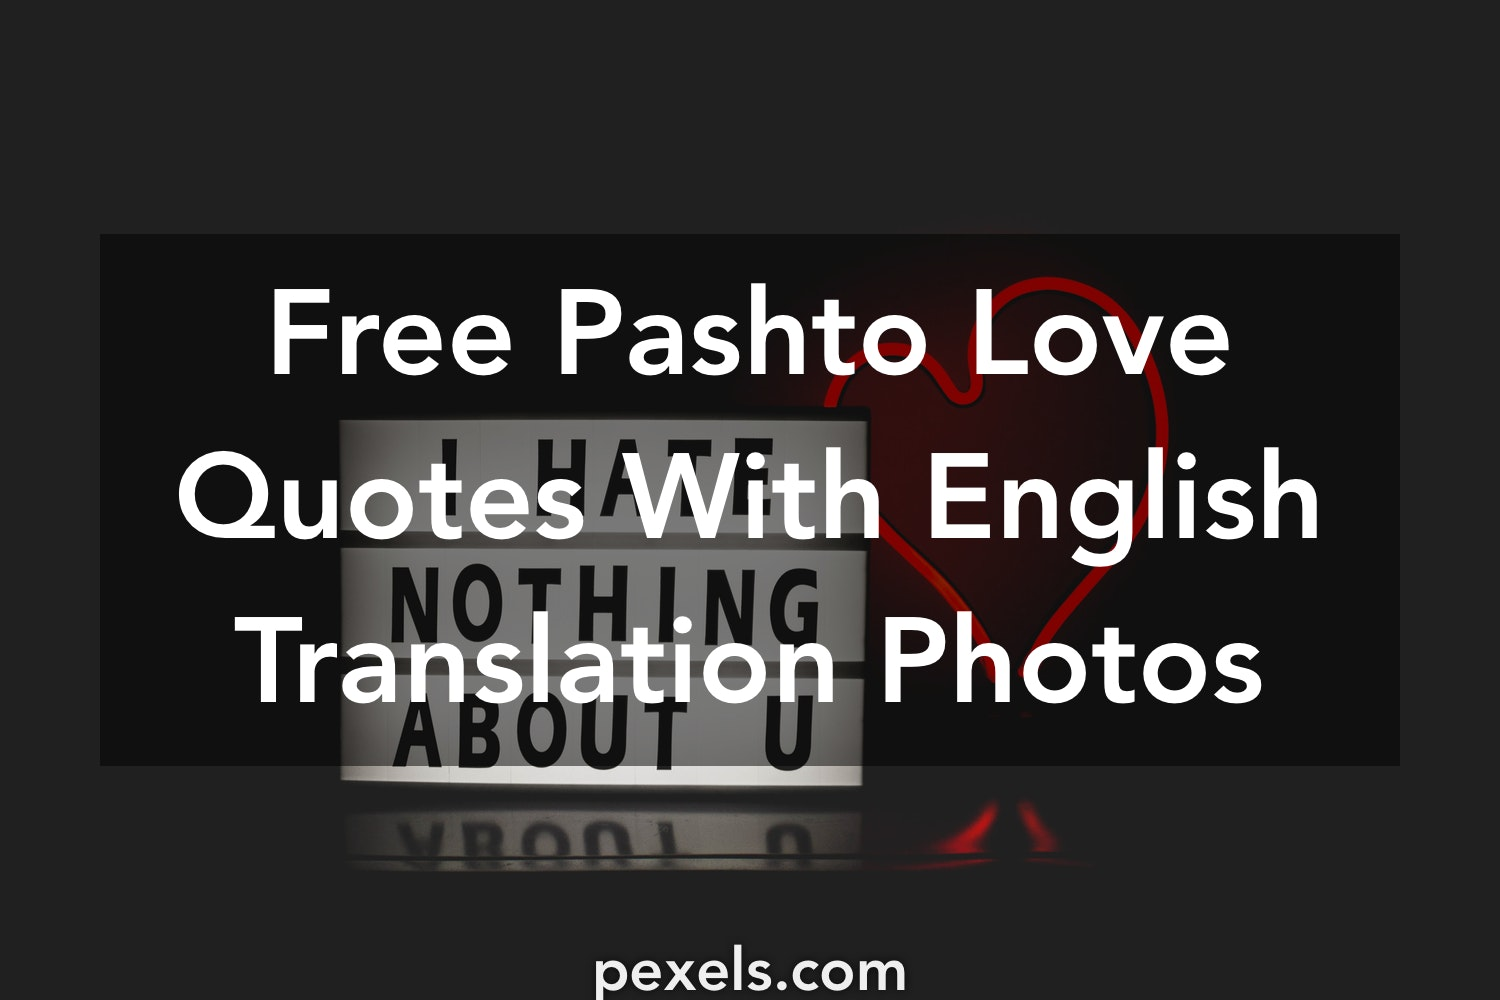 1000 Great Pashto Love Quotes With English Translation Photos